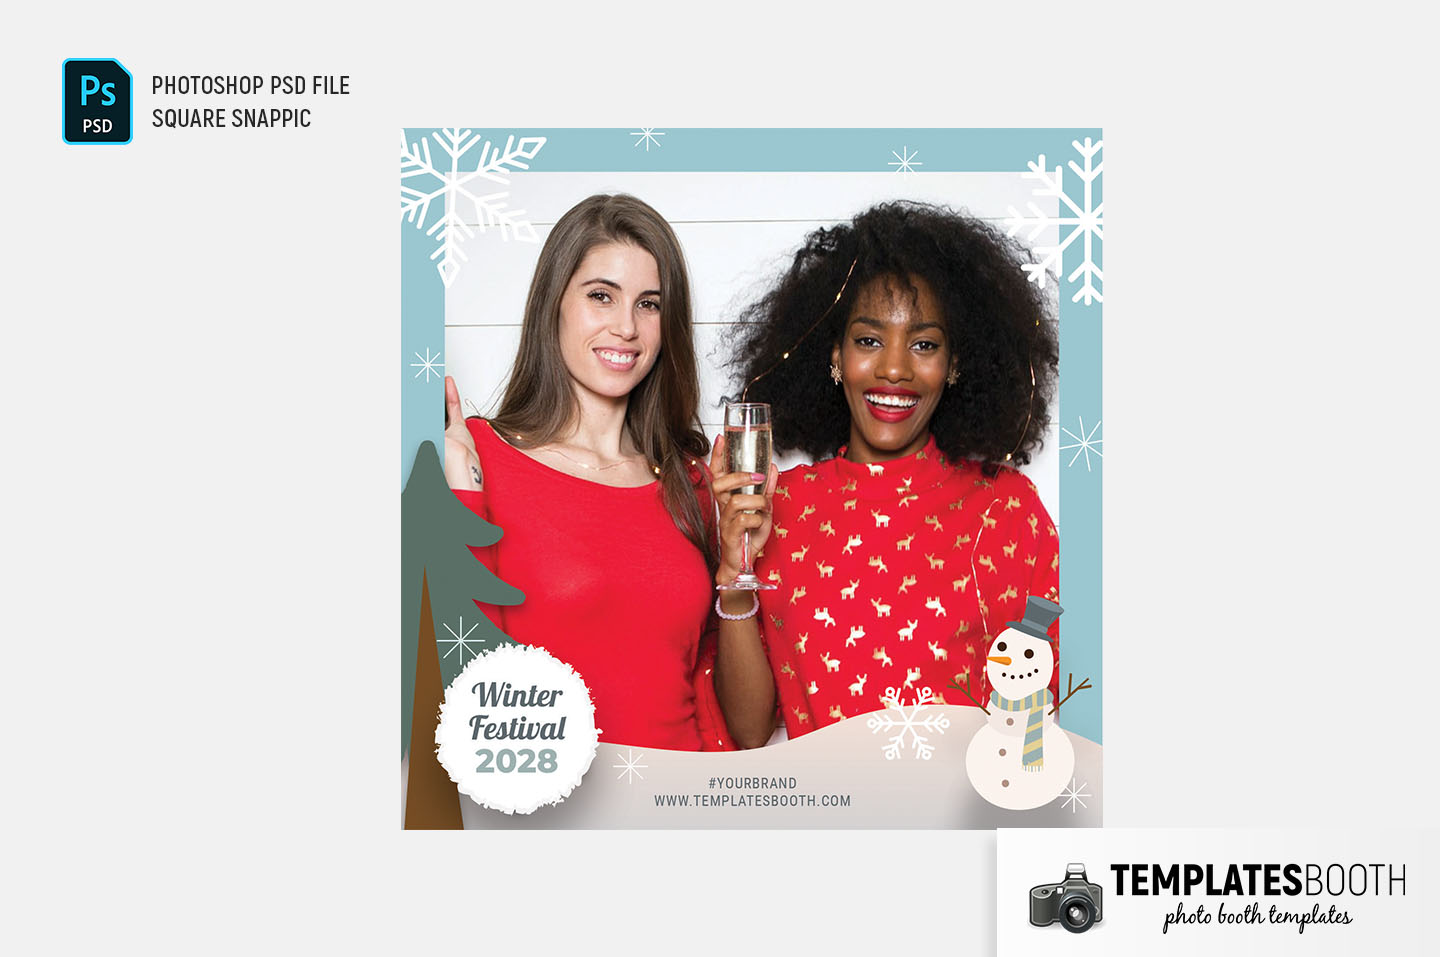 Winter Festival Photo Booth Template (Snappic)